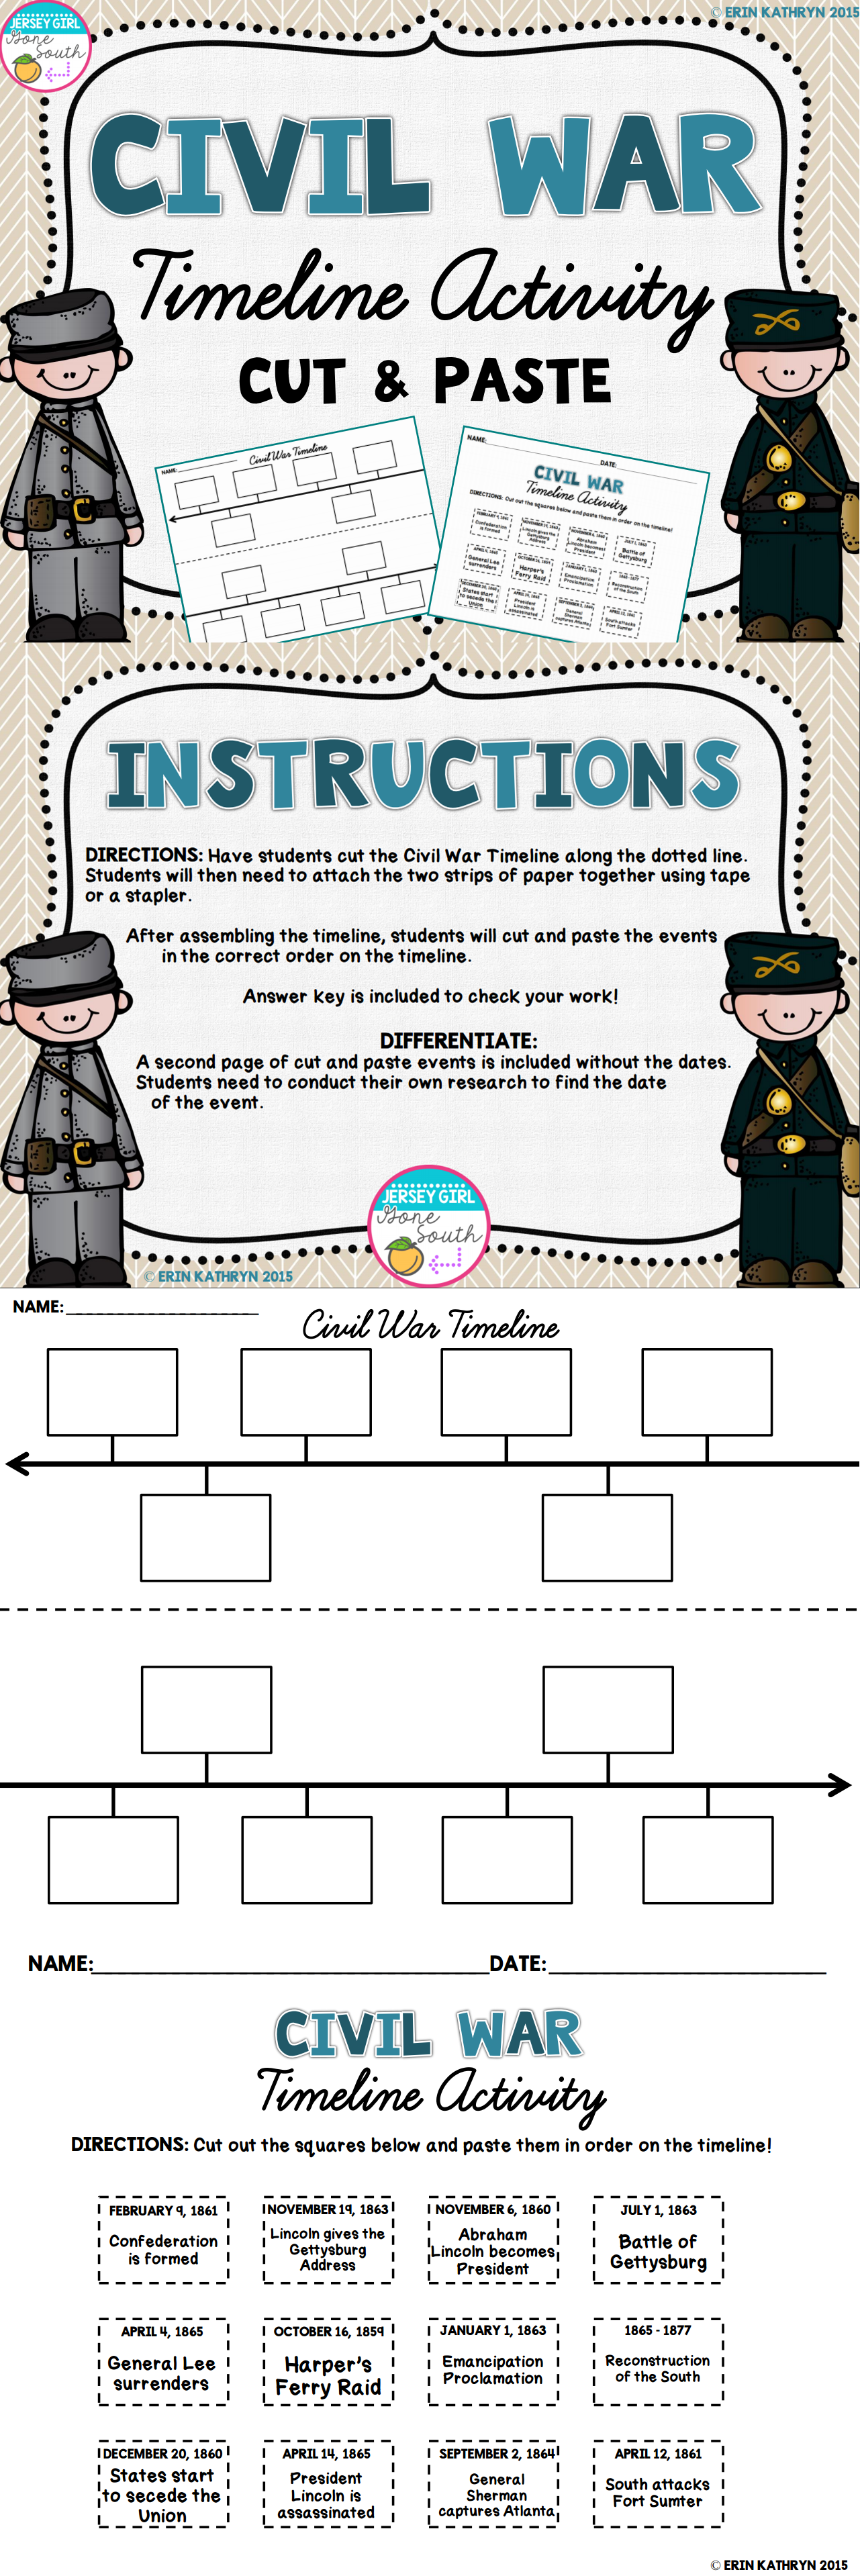 This Civil War Timeline Activity Is An Awesome Way For